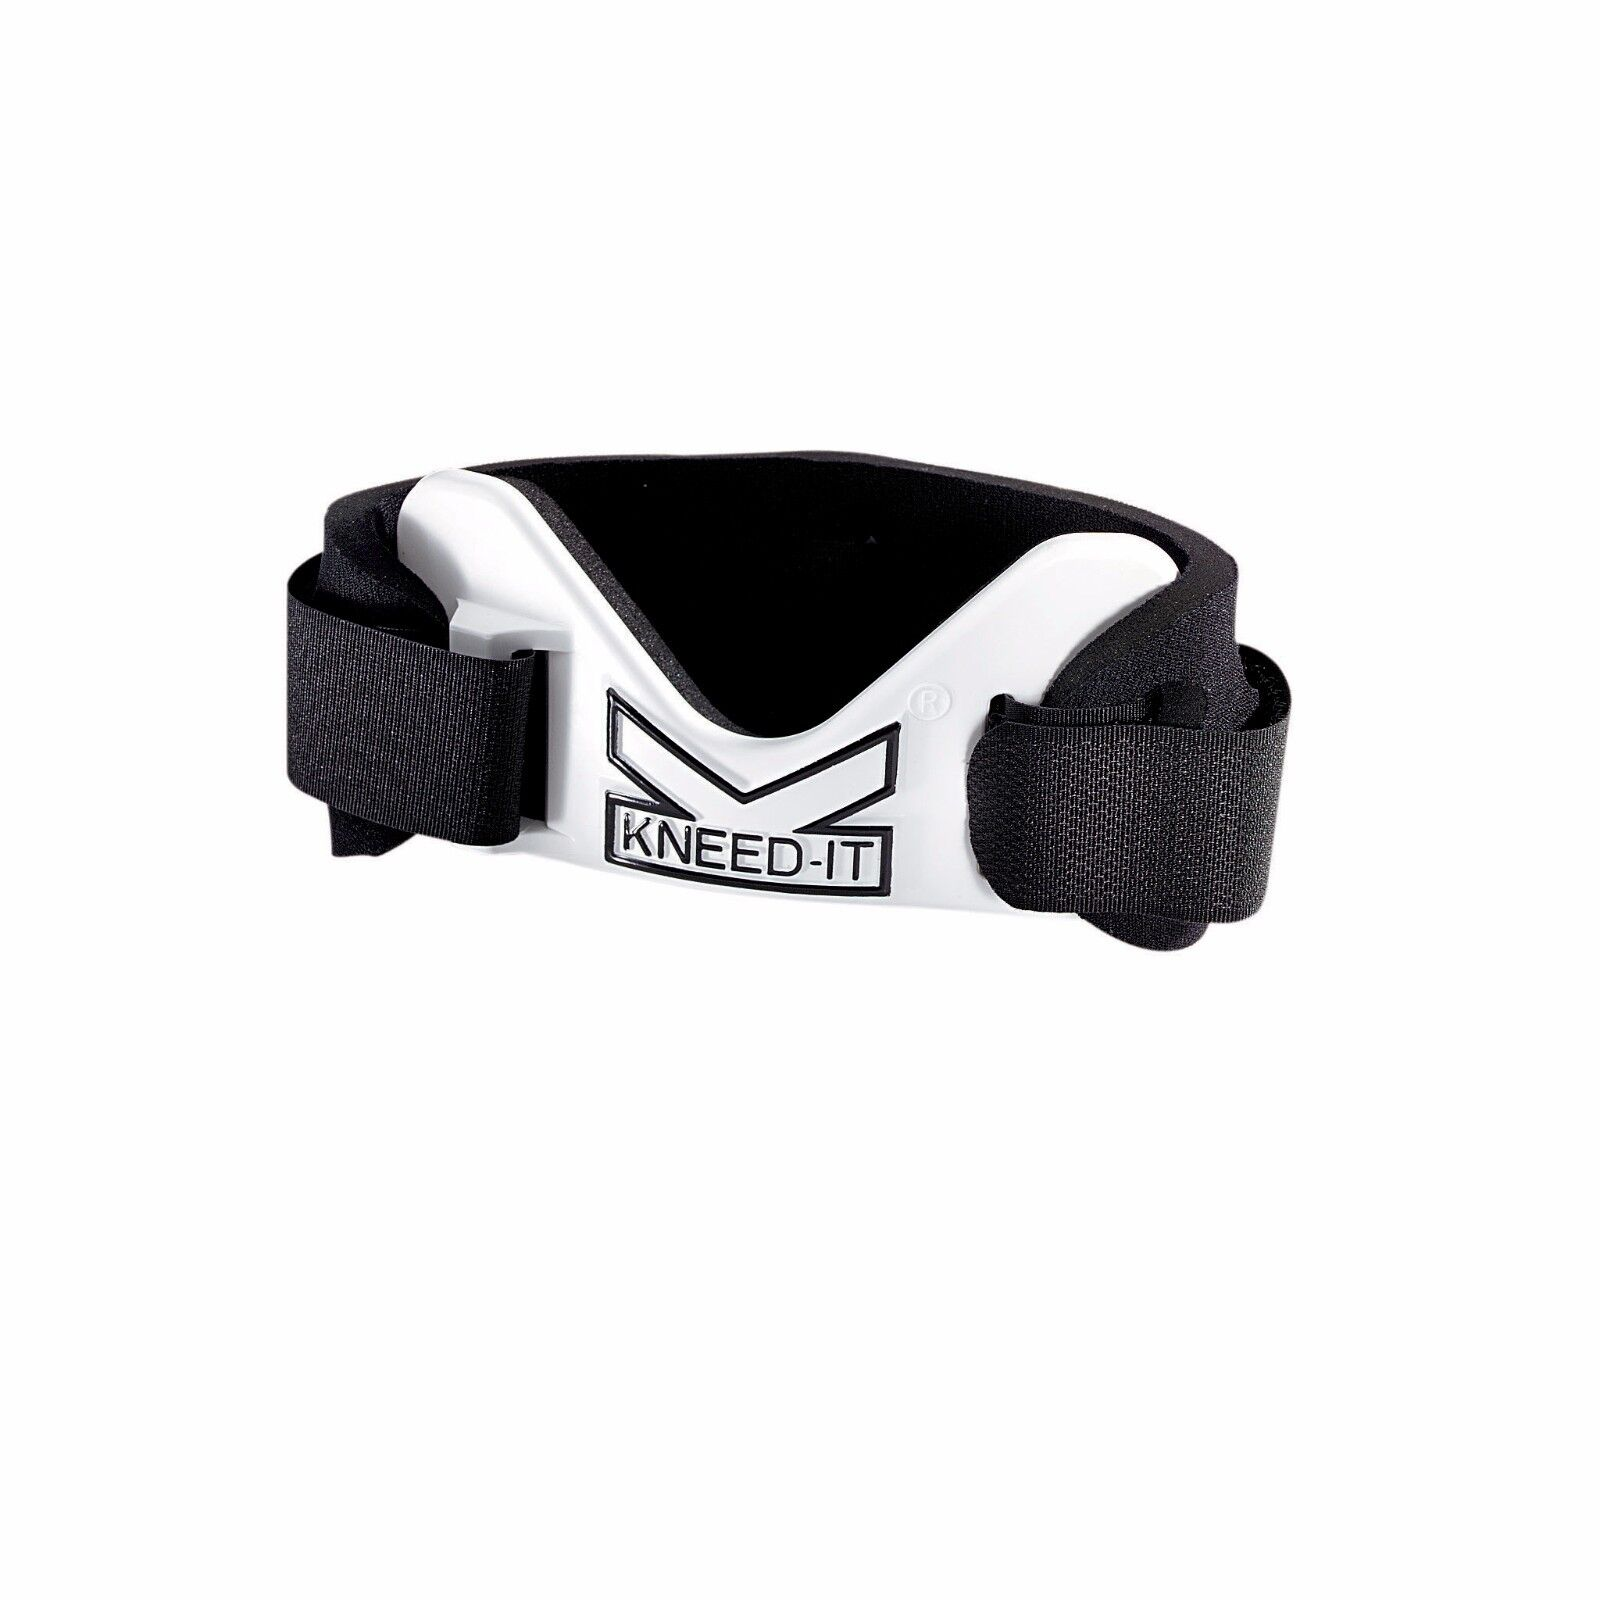 Robby's KneedIT Therapeutic Knee Guard